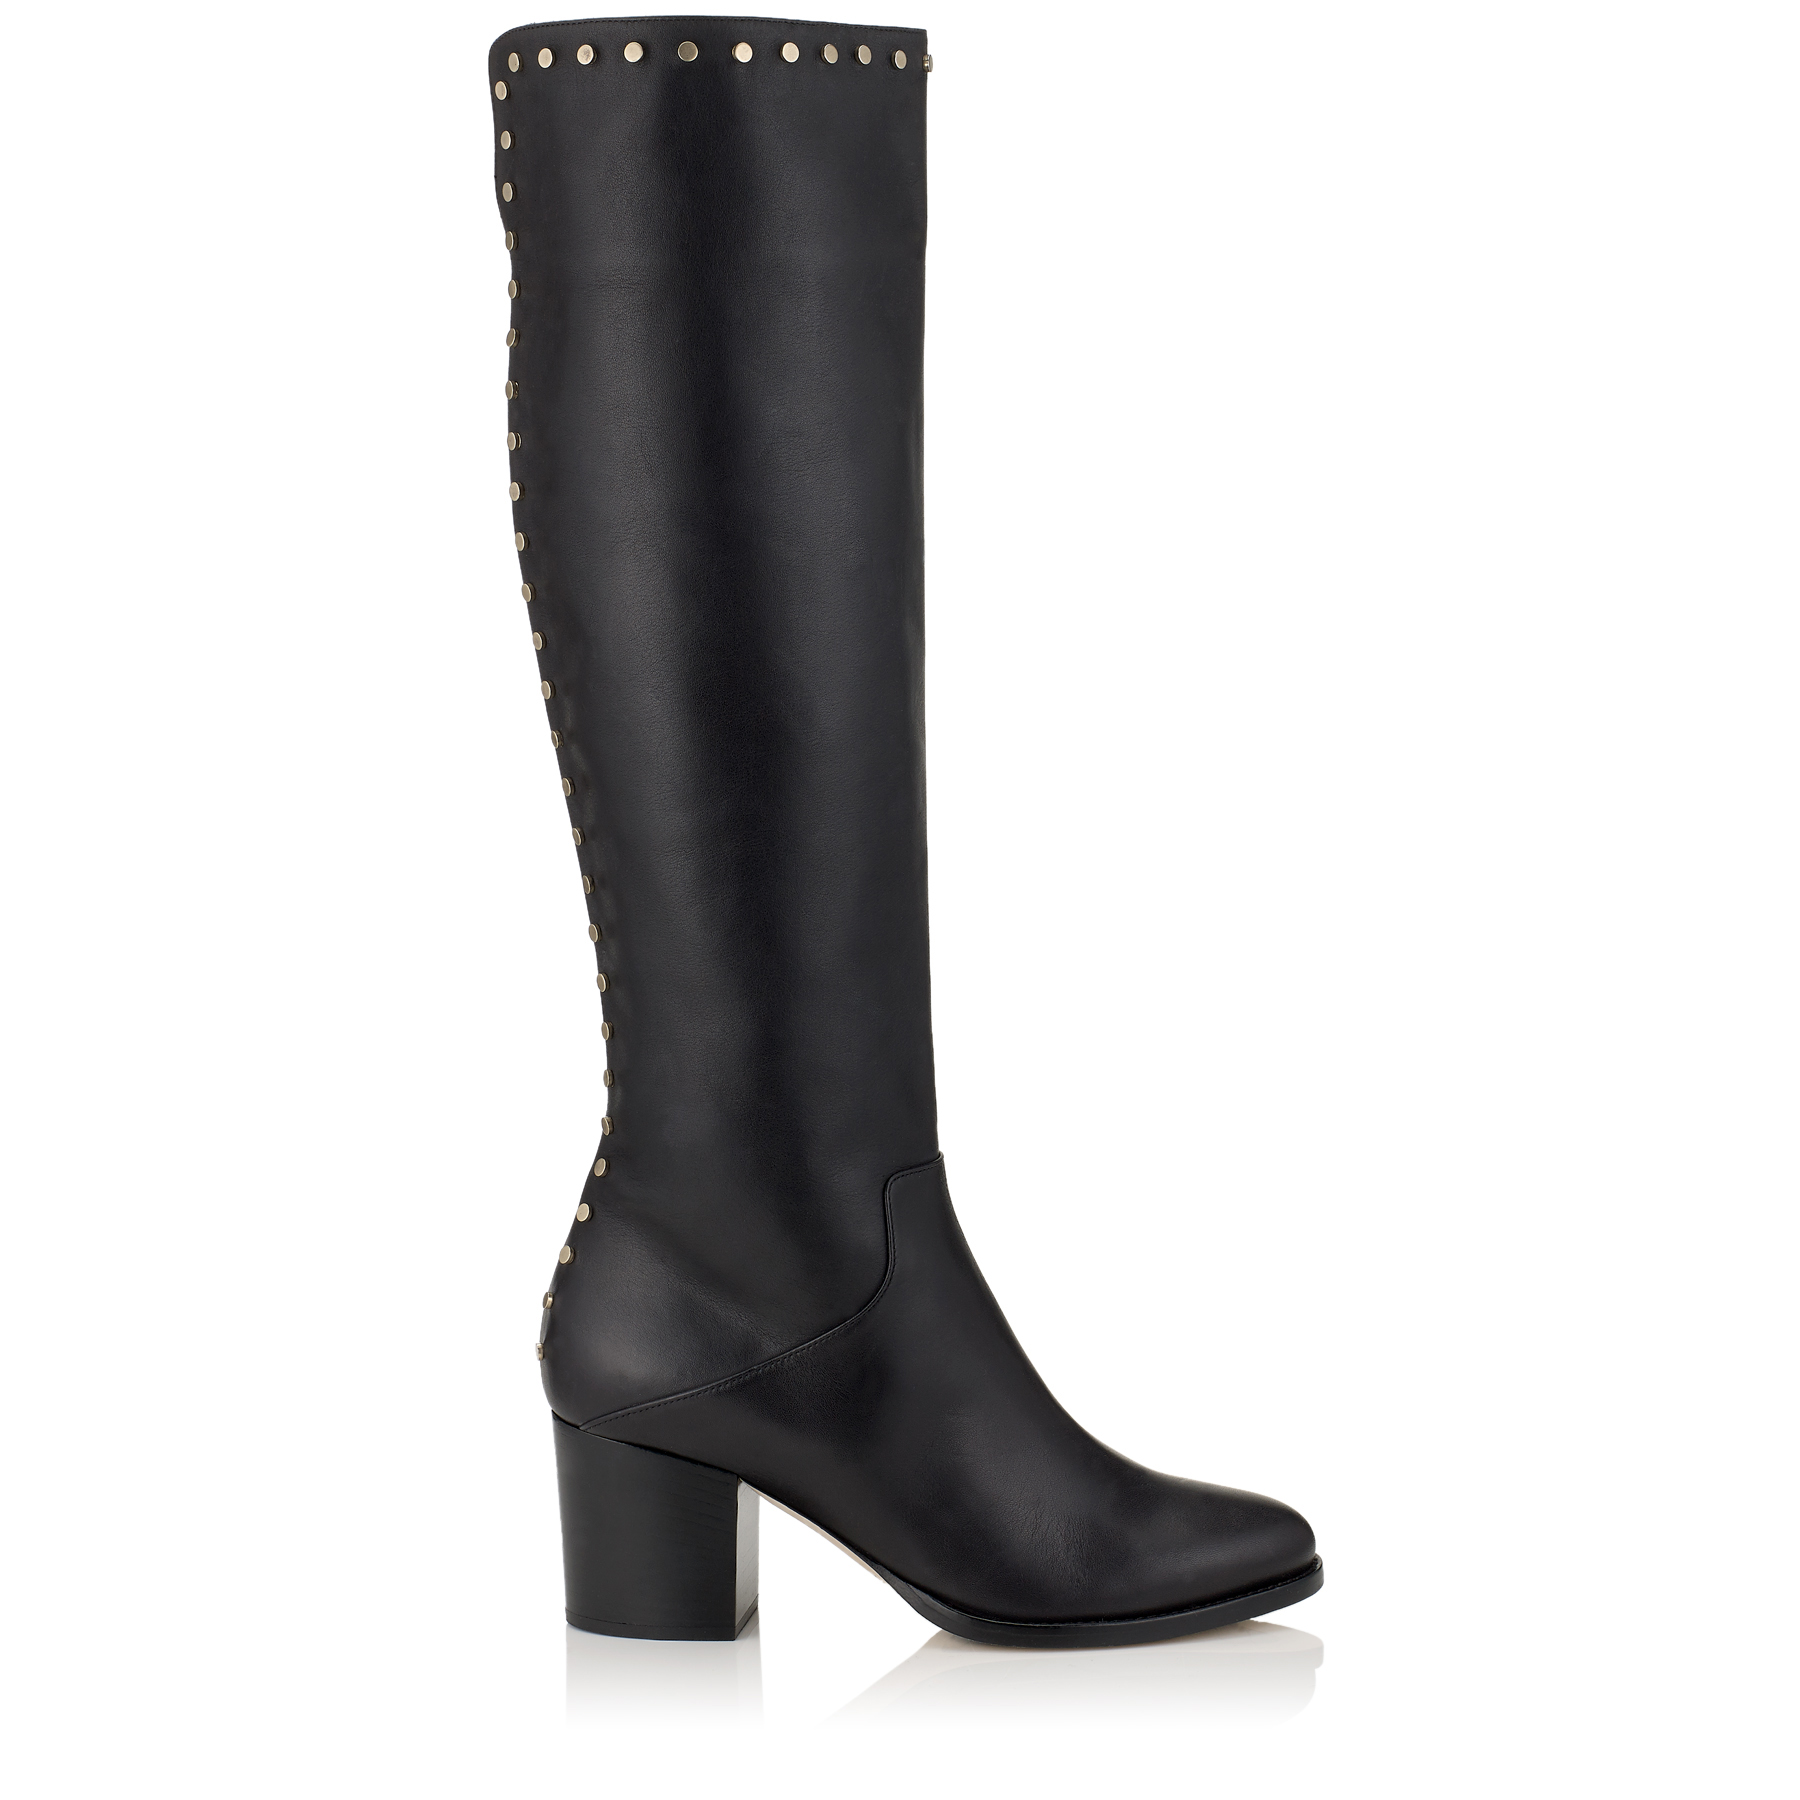 MONROE 65 Black Smooth Leather Knee High Boots with Studs Trim by Jimmy Choo